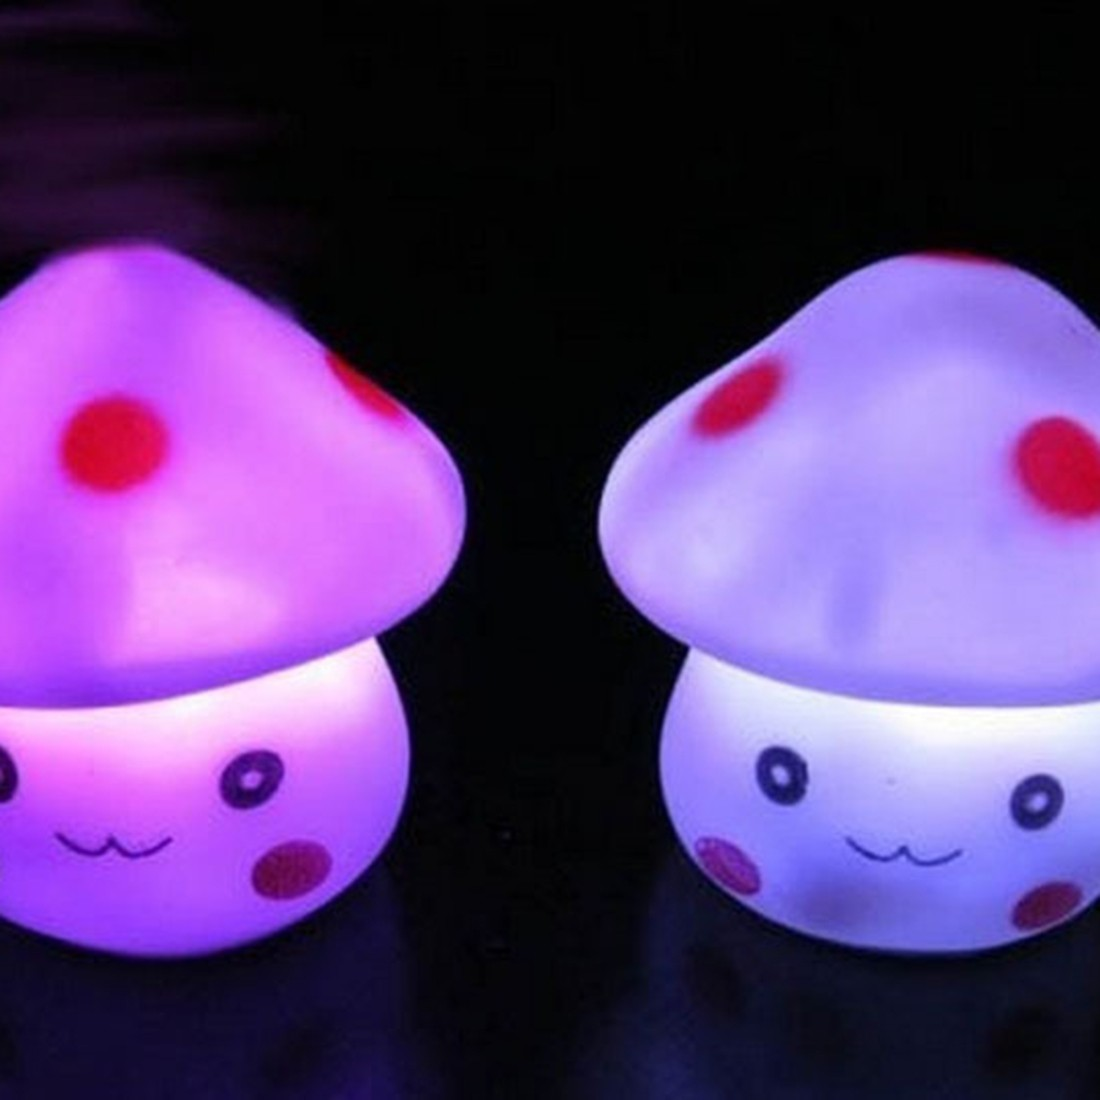 LED Novelty Lamp Color Changing Night Romantic Mushroom Light Cute Lamp Decor For Party Bedroom Decor Wedding Christmas Gifts